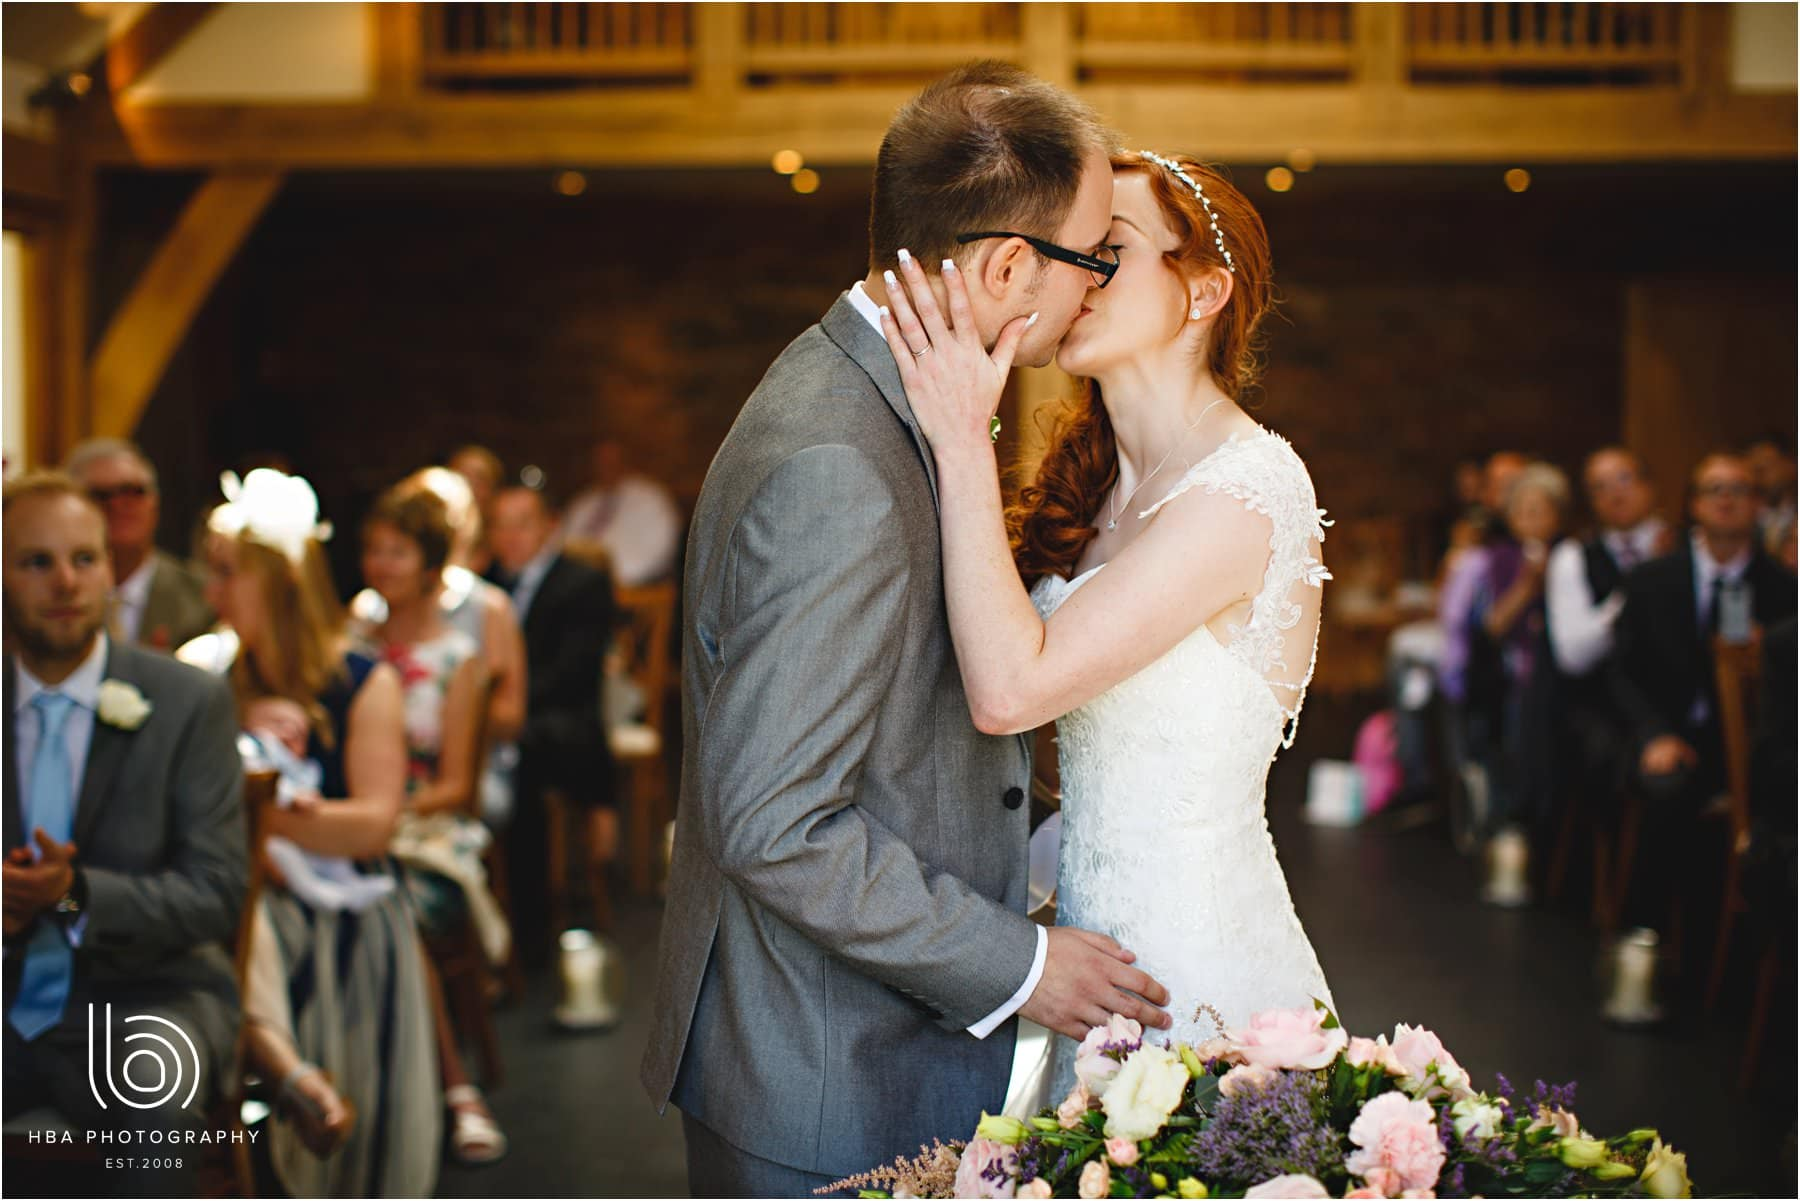 the first kiss during the ceremony